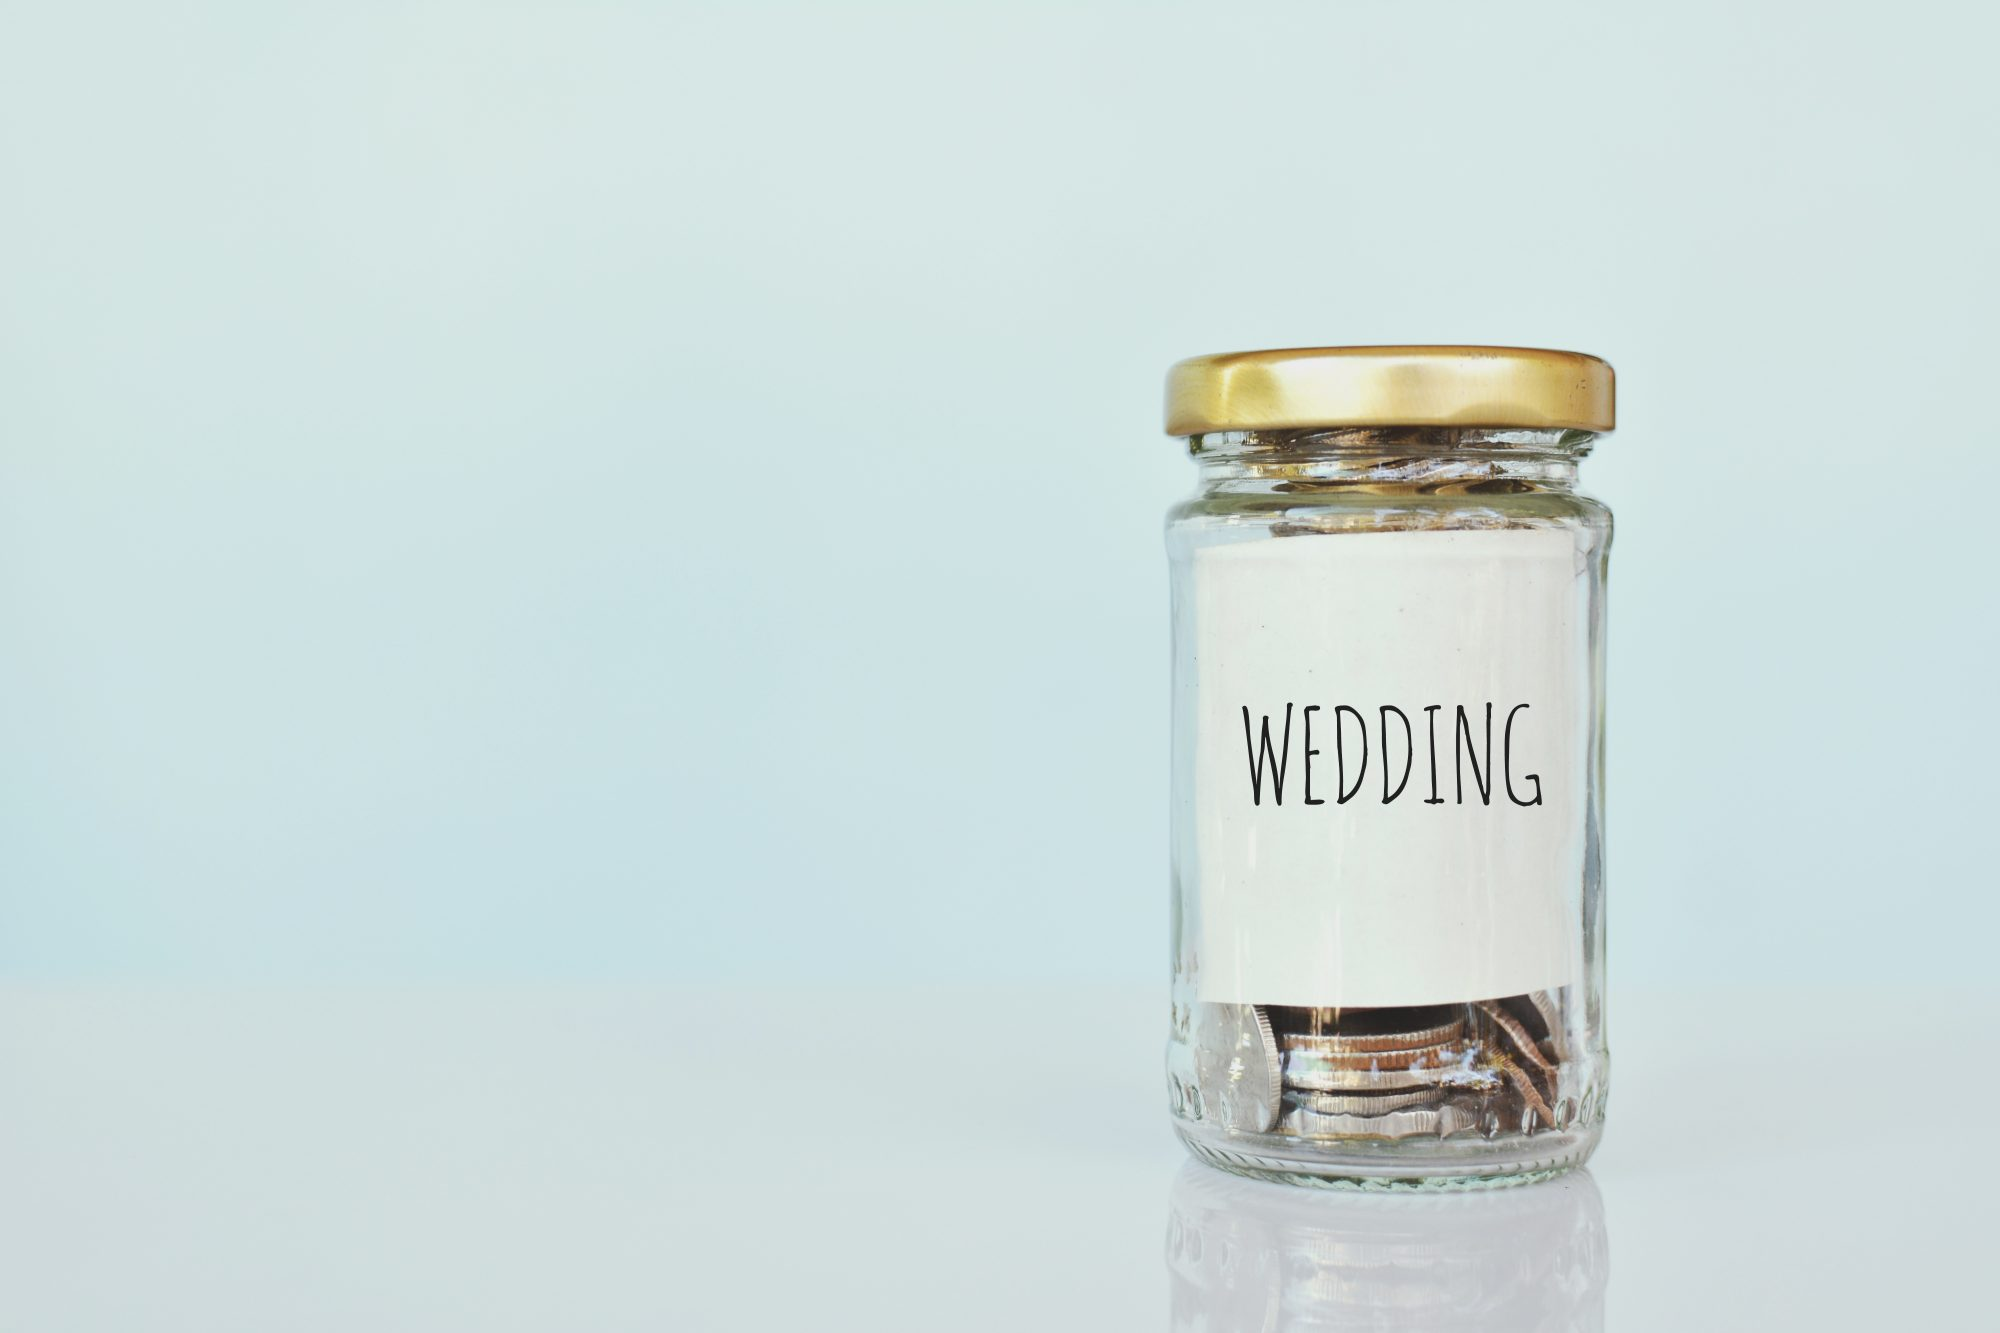 tipping-wedding-jar